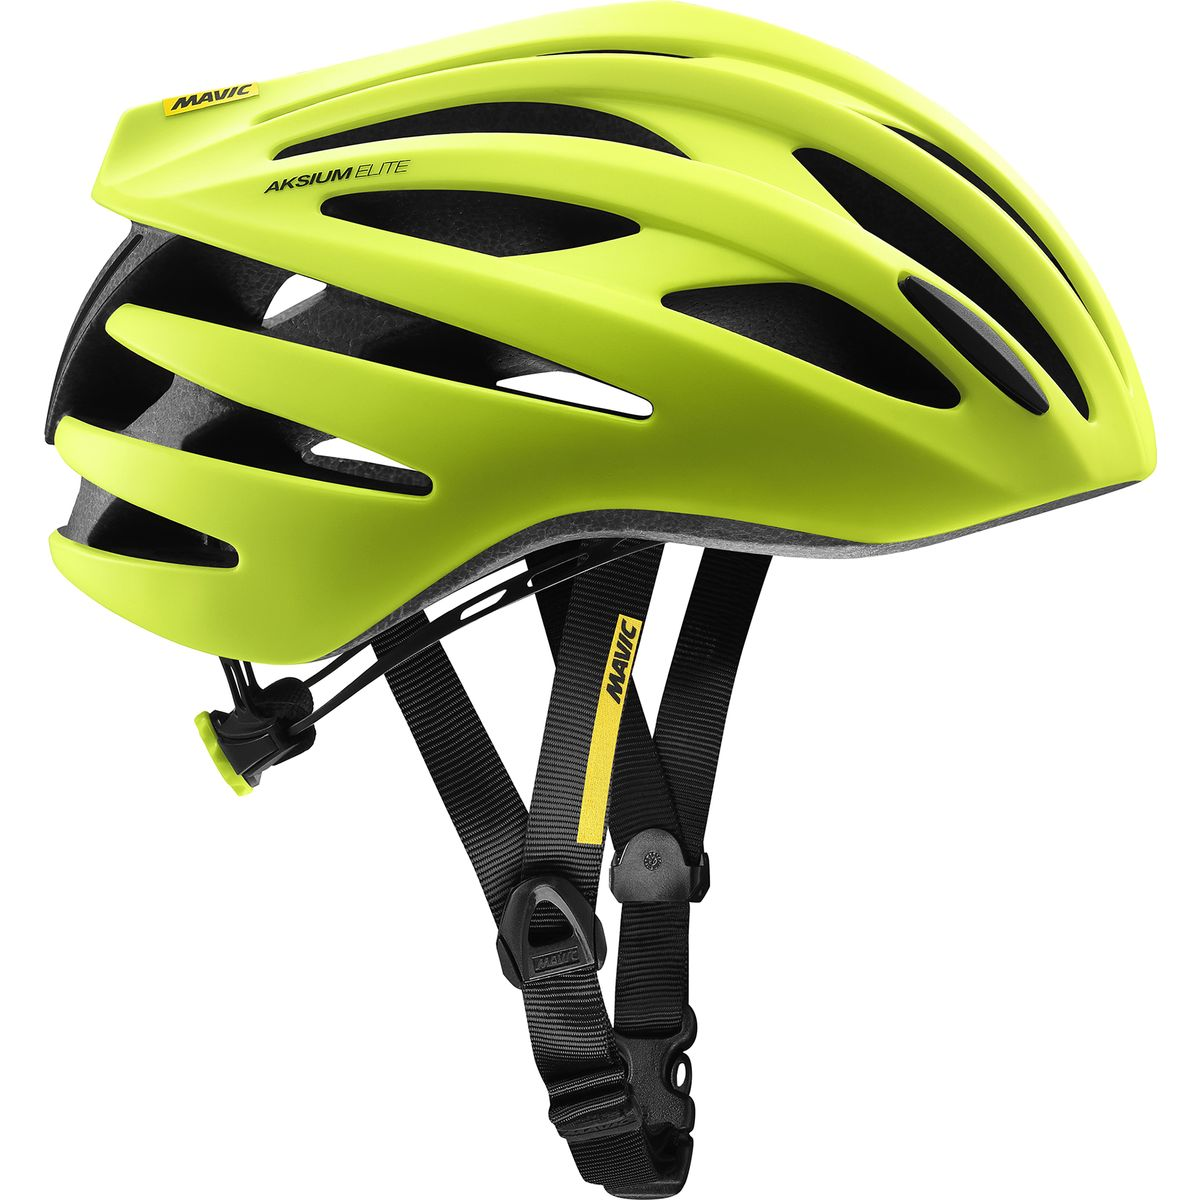 AKSIUM ELITE road helmet